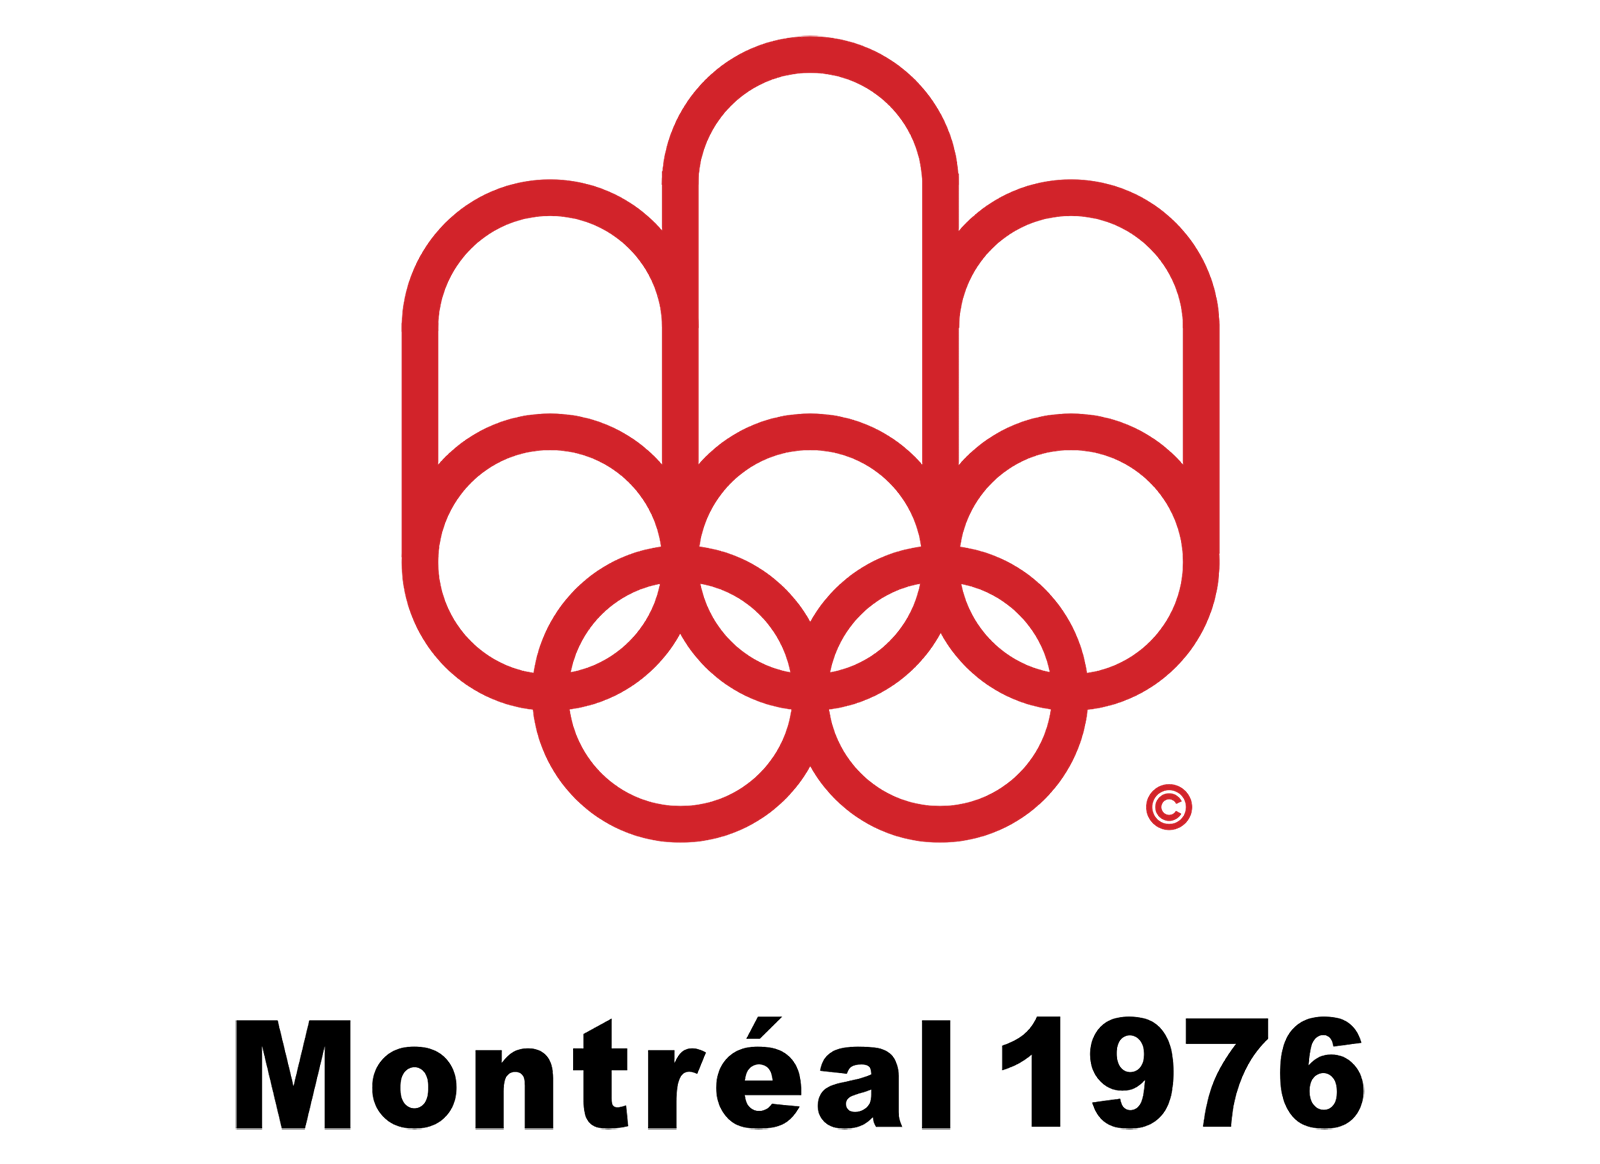 Montreal – Summer Olympics 1976